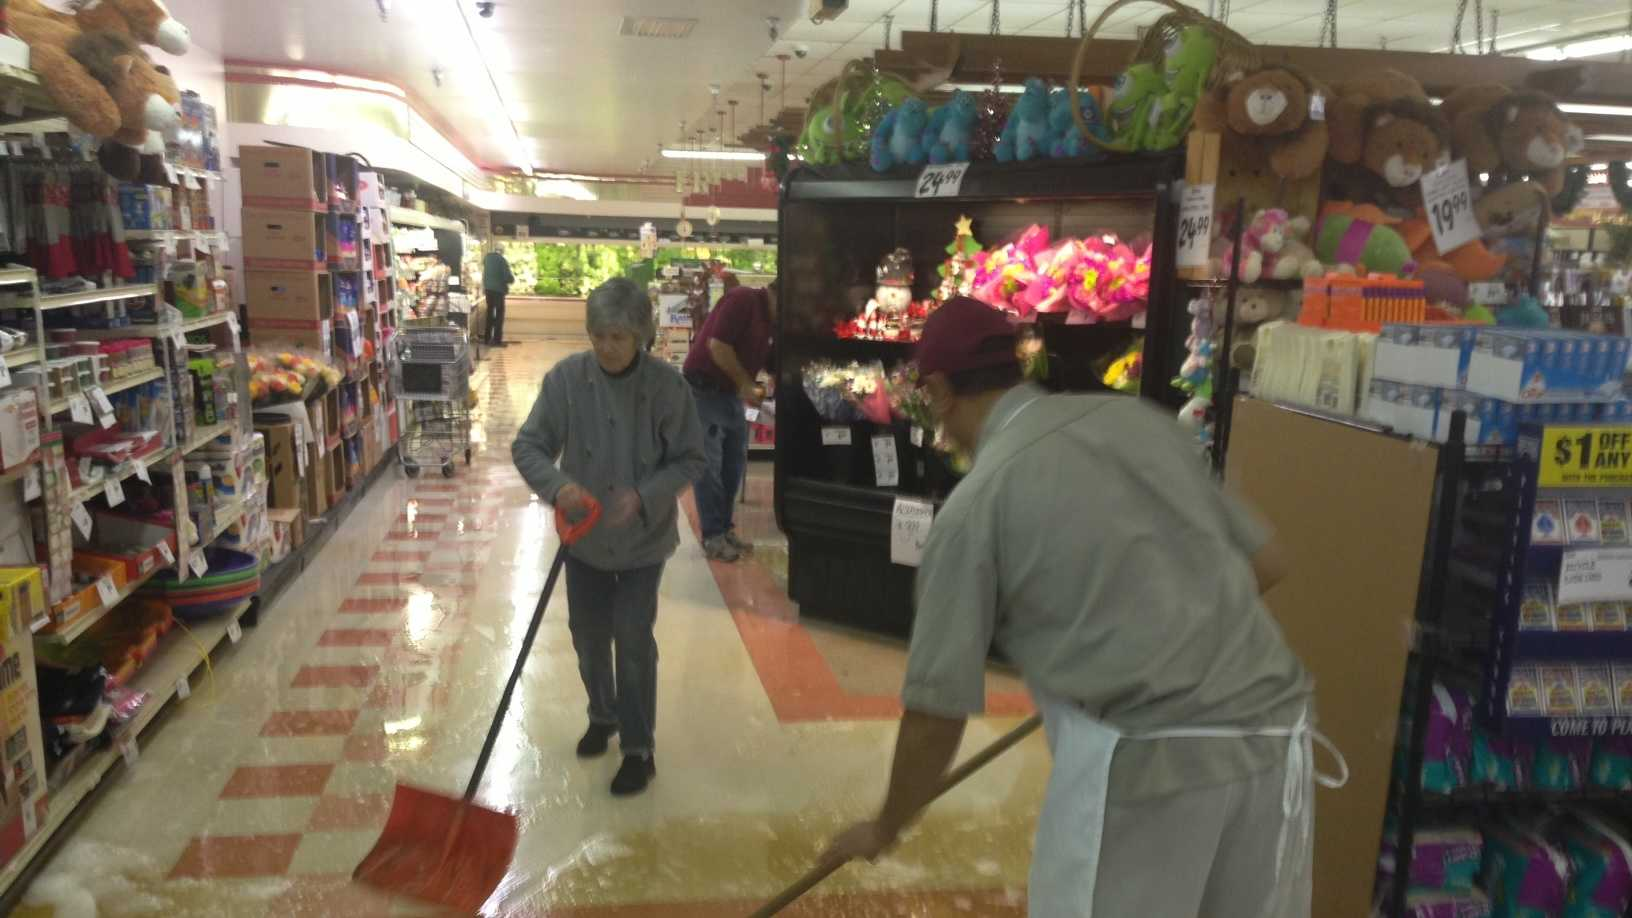 Kuhn's cleanup